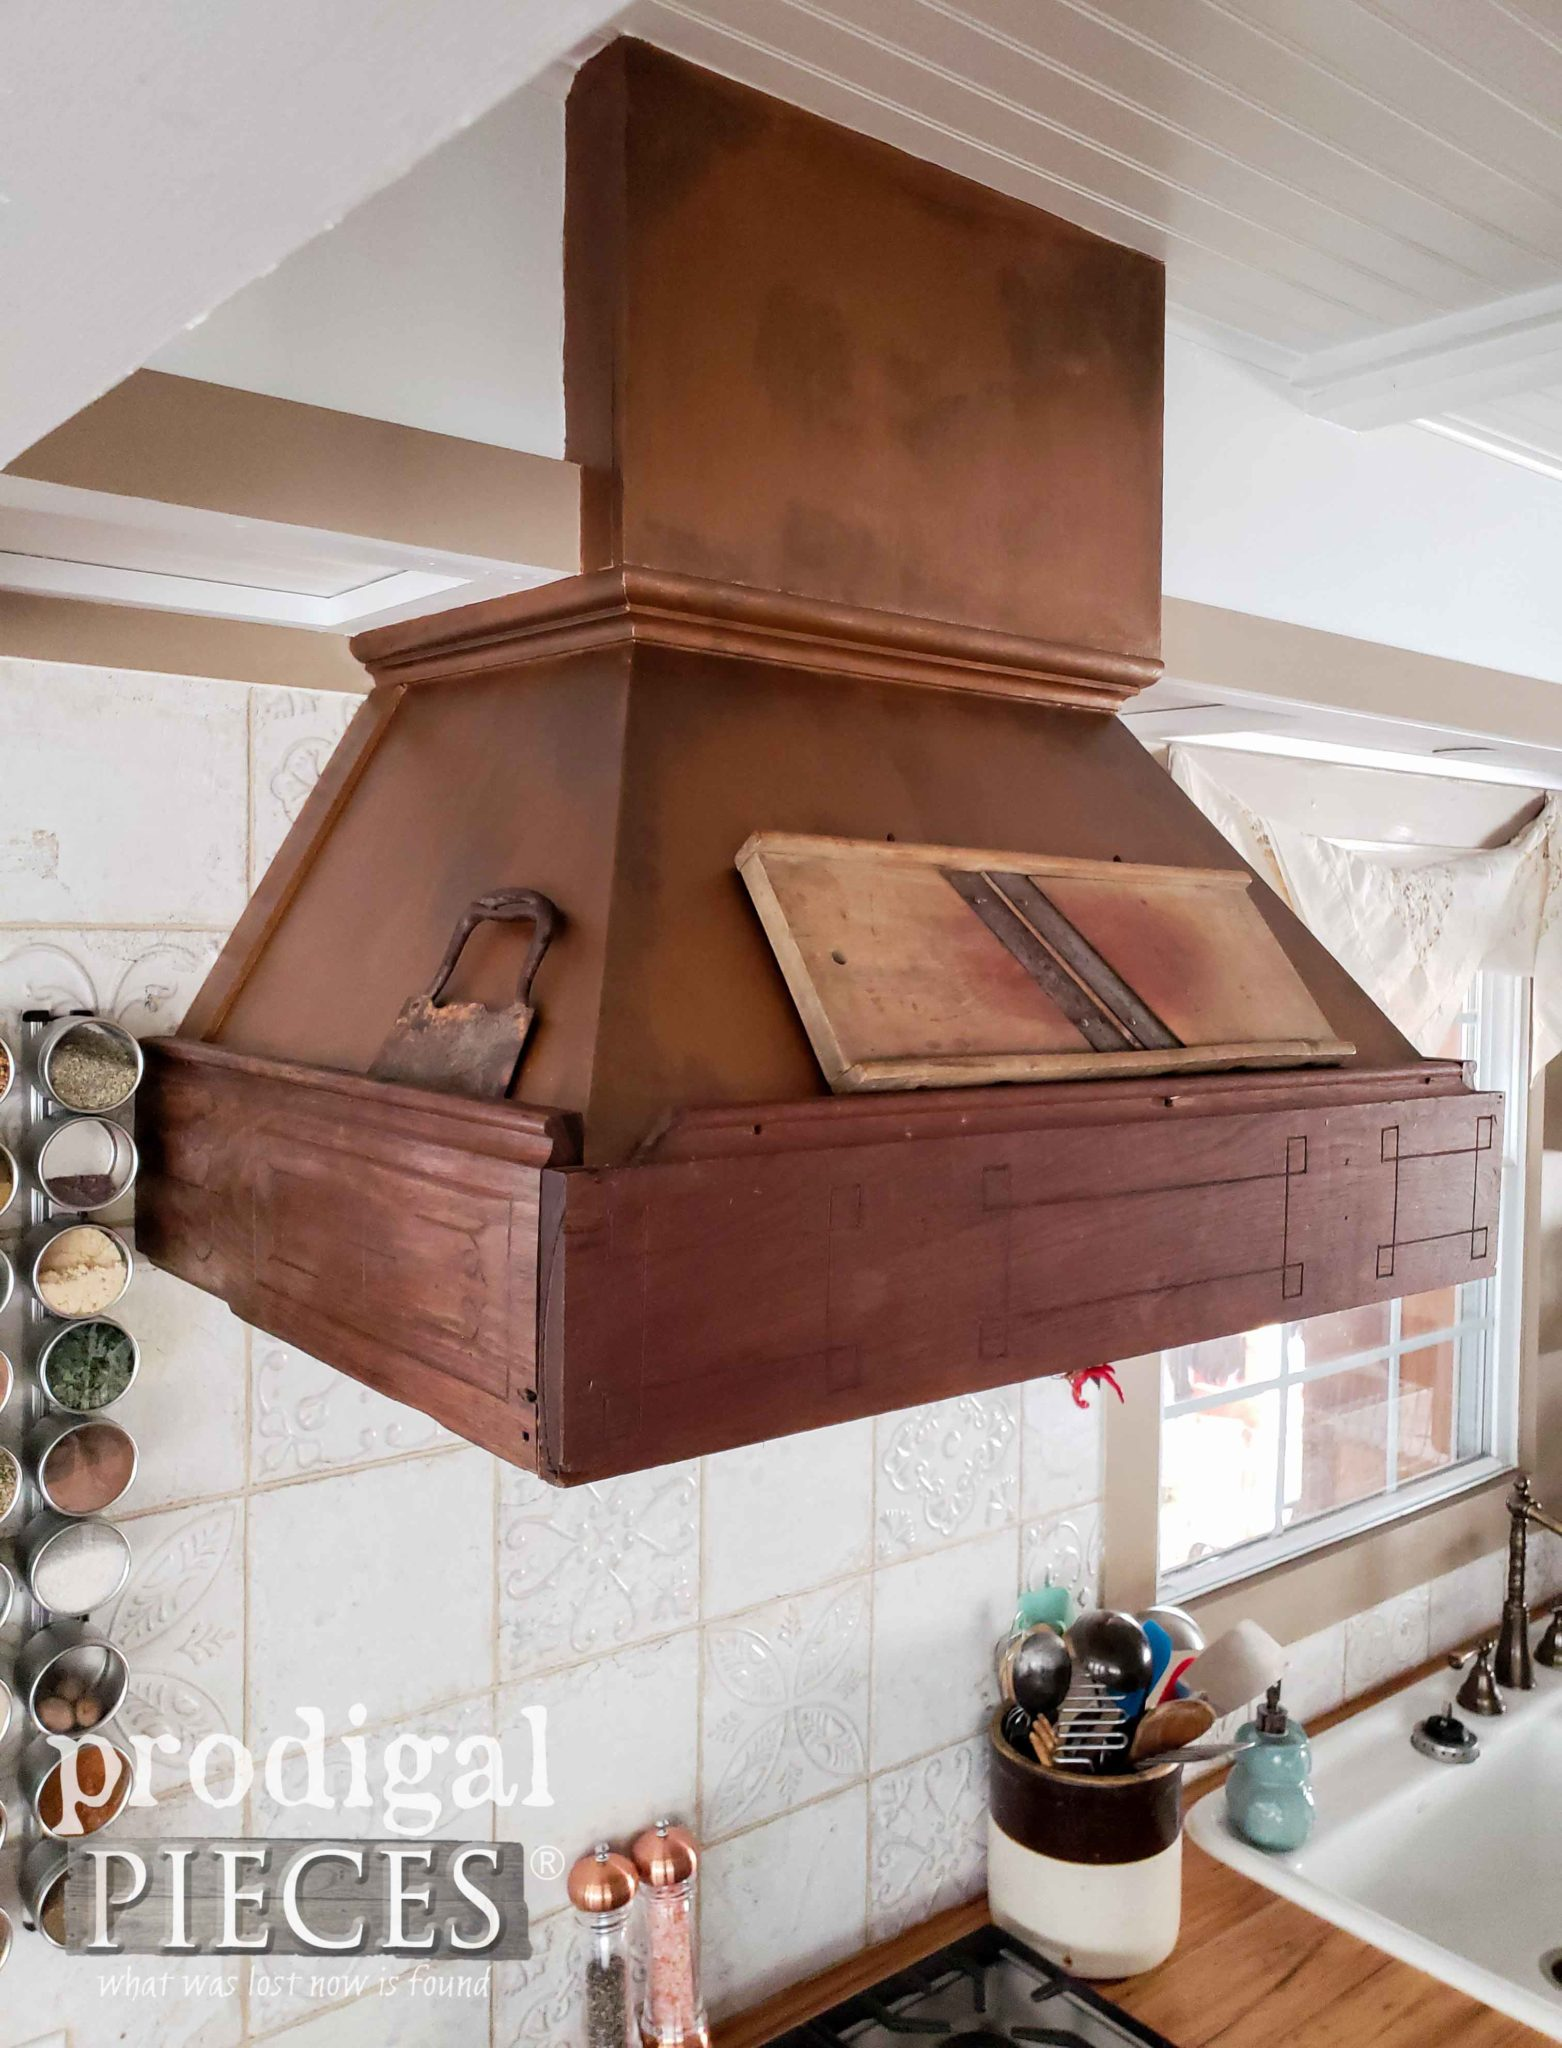 Reclaimed Range Hood made from 1800's Hand-Carved Trim and Copper Top by Prodigal Pieces | prodigalpieces.com